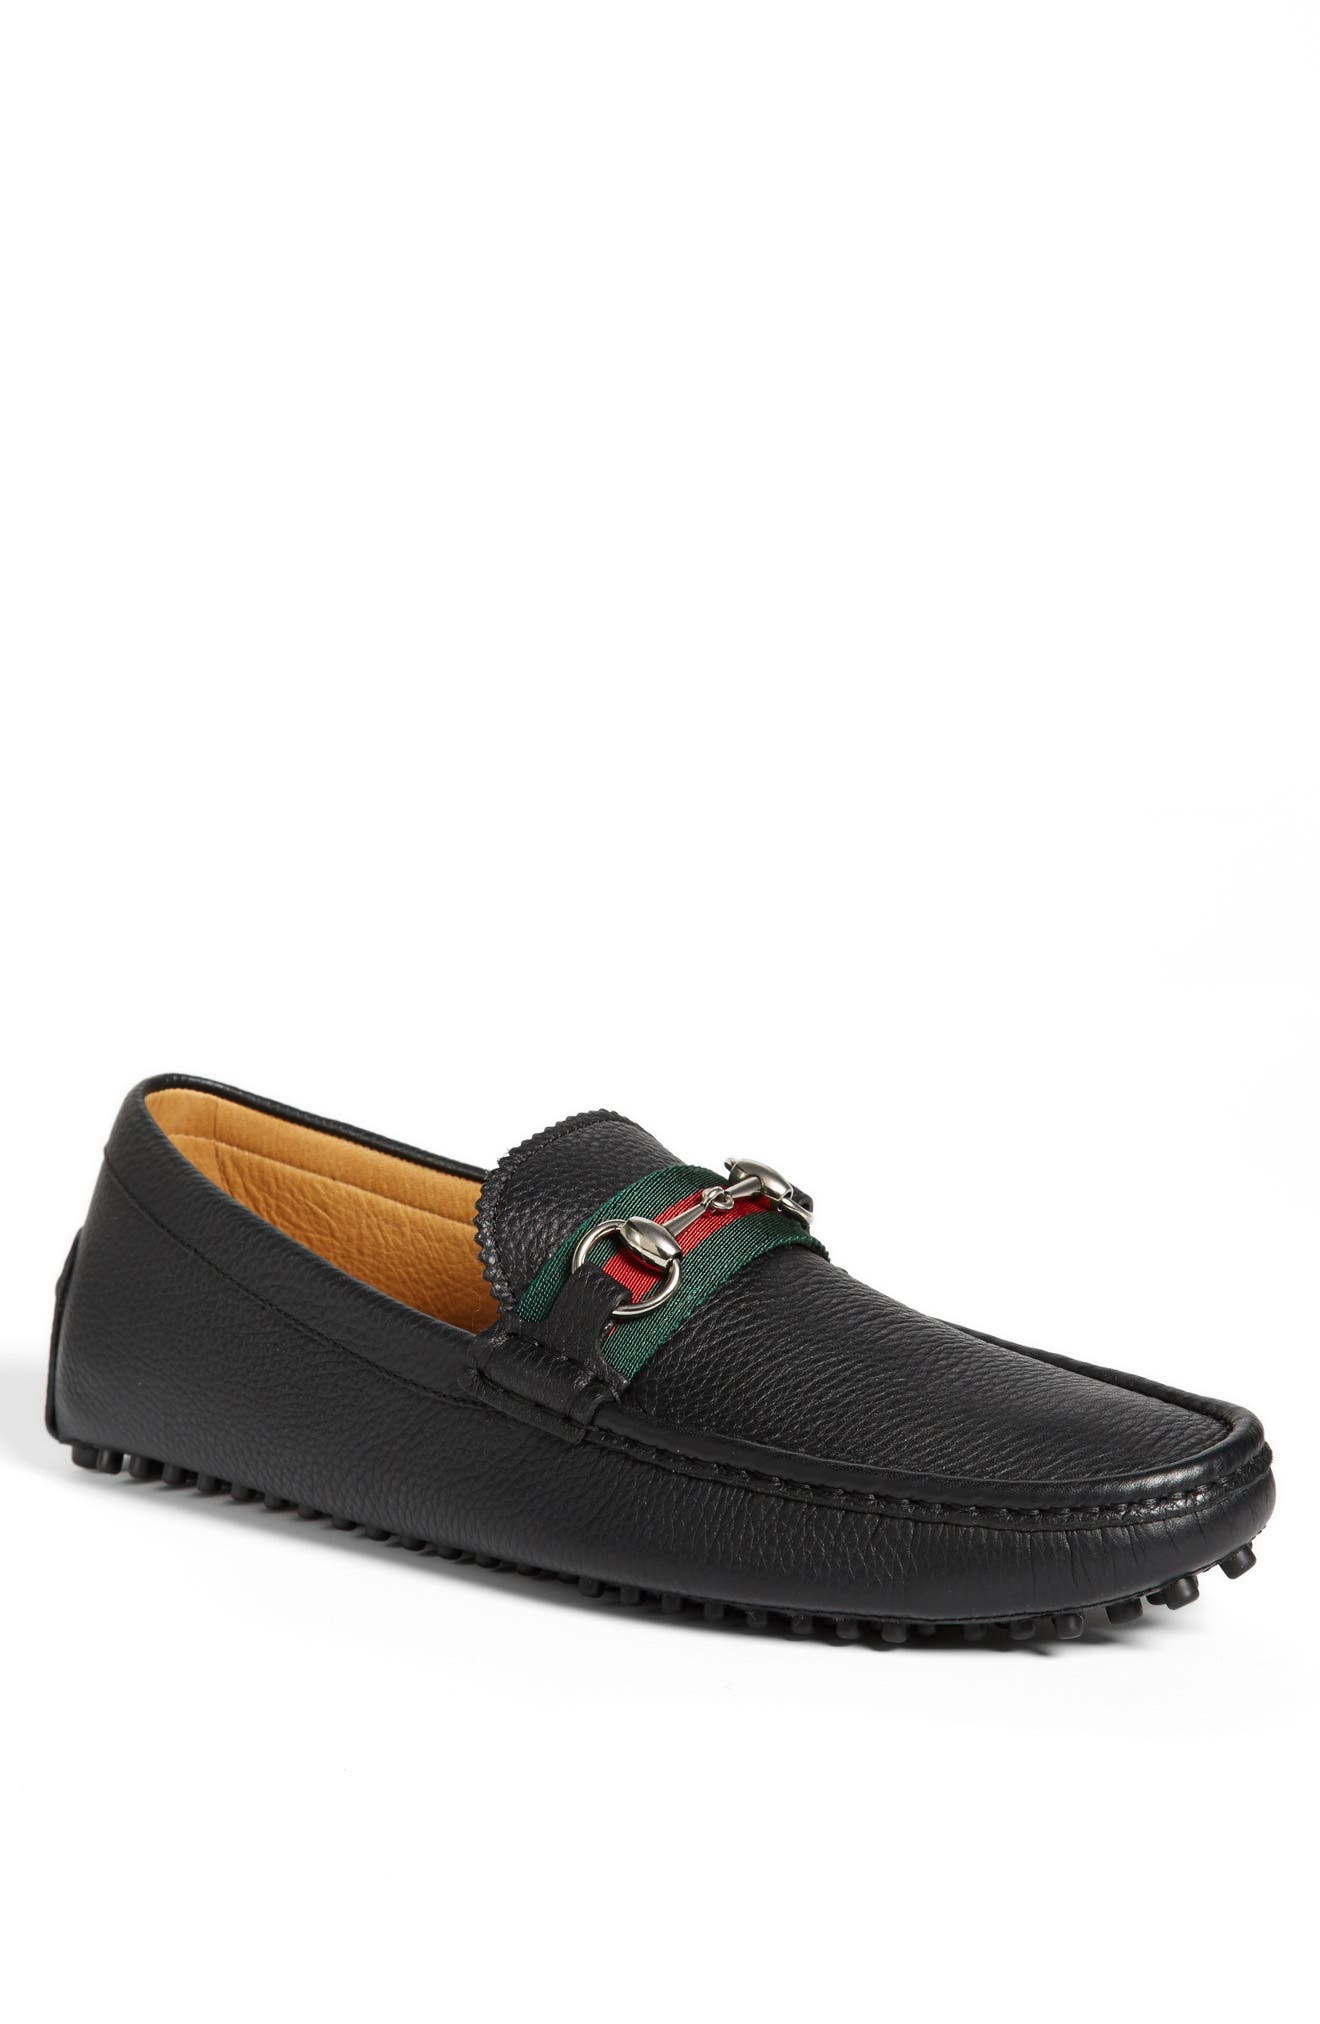 GUCCI 'Damo' Driving Shoe, Main, color, BLACK